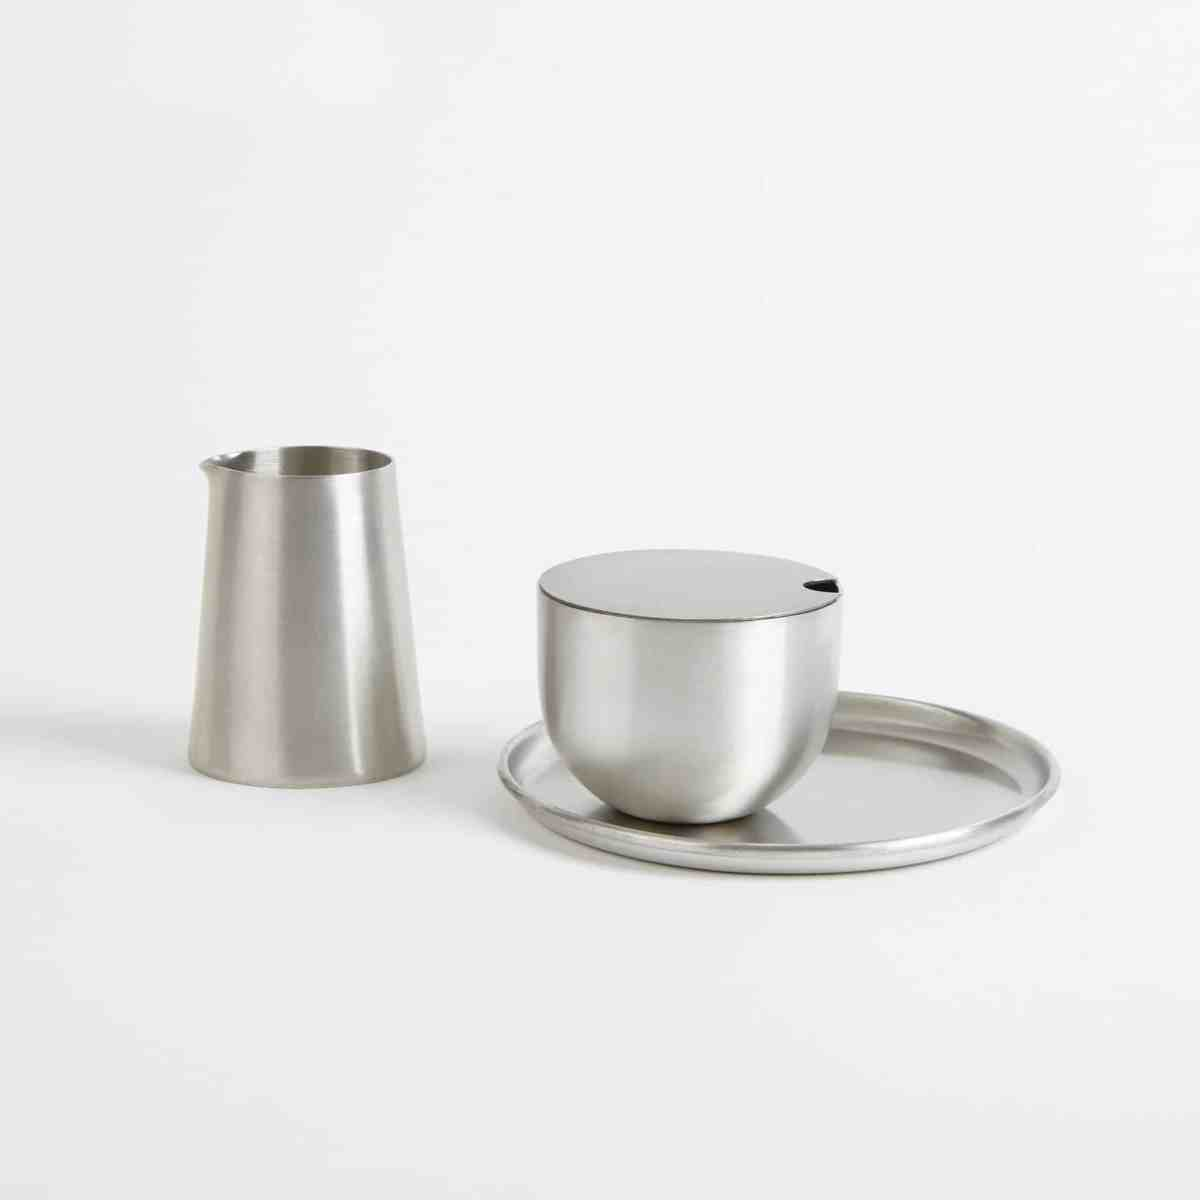 pottery-series-pewter-another-country-001